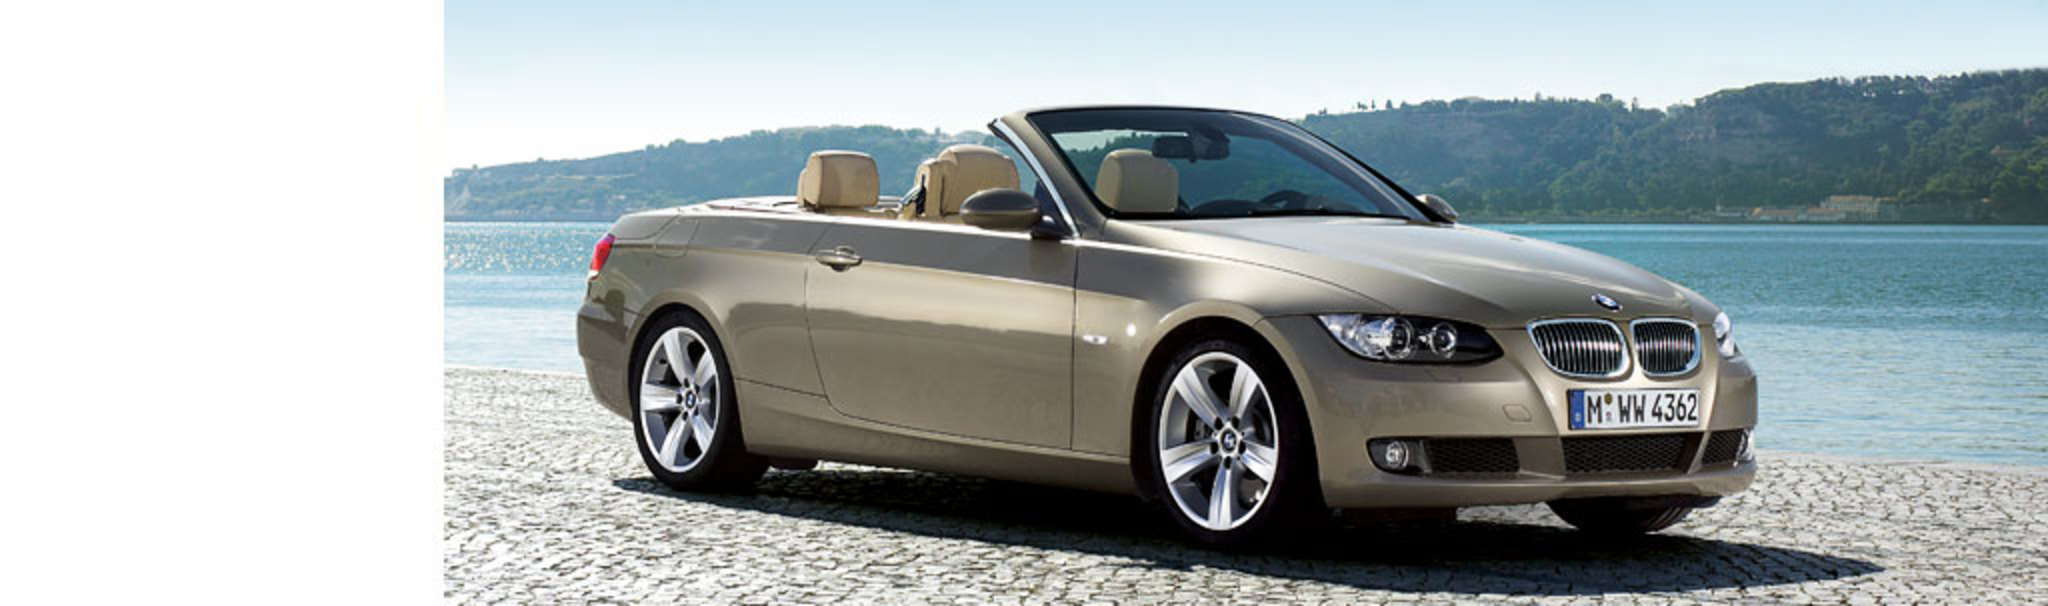 Bmw 320d cabriolet (610 comments) Views 29706 Rating 51